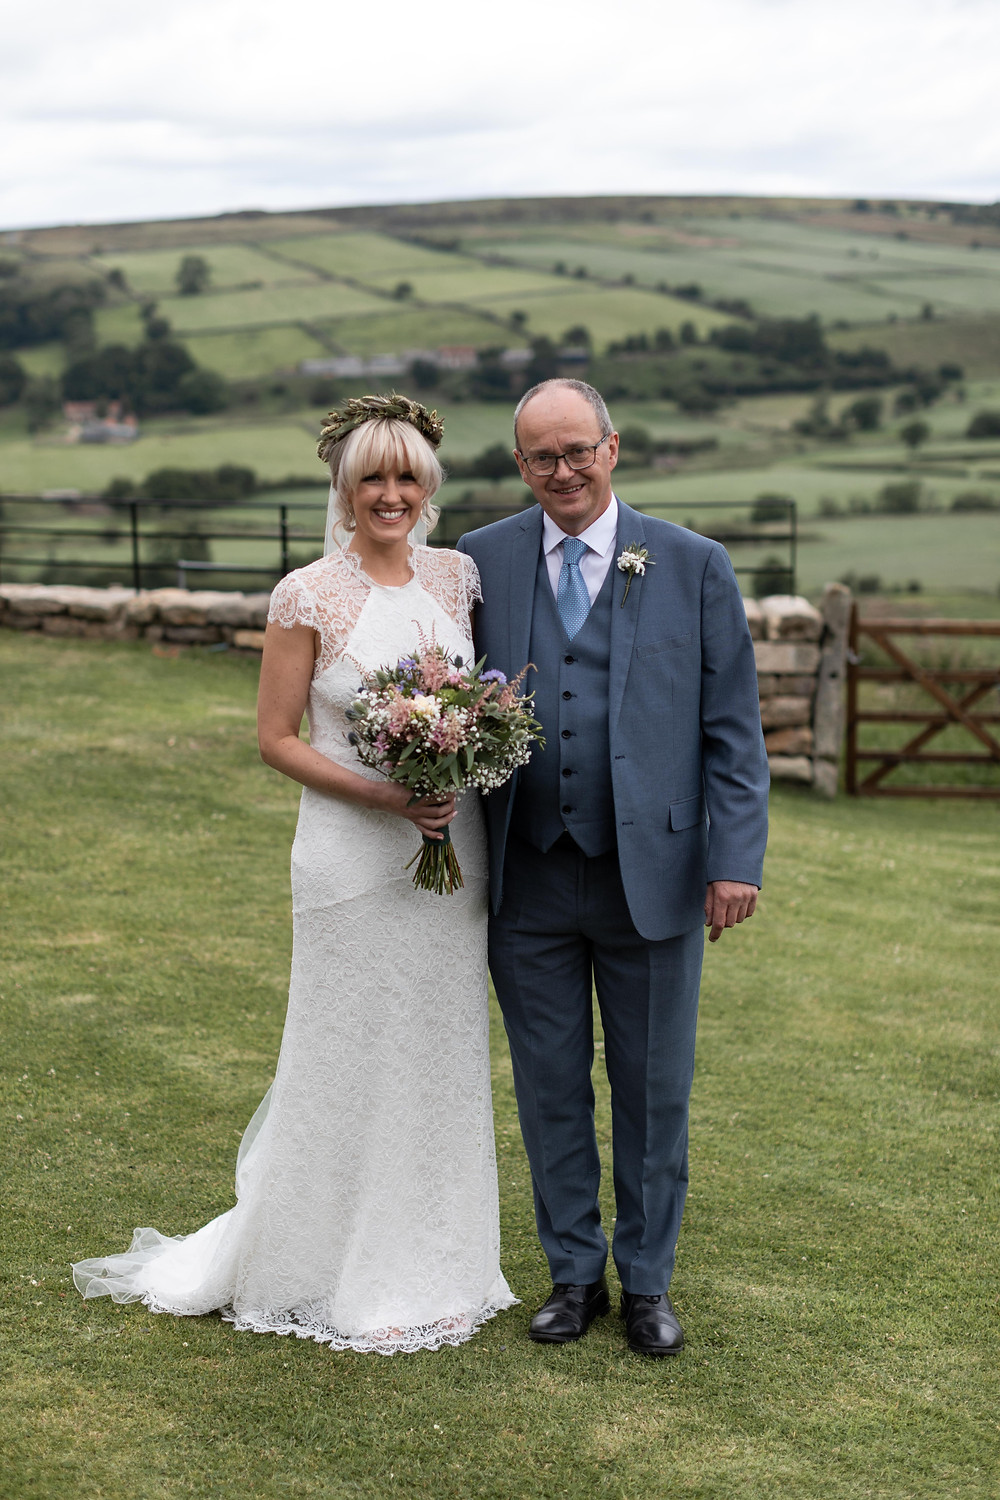 The bride and her father by Jack Cook photography